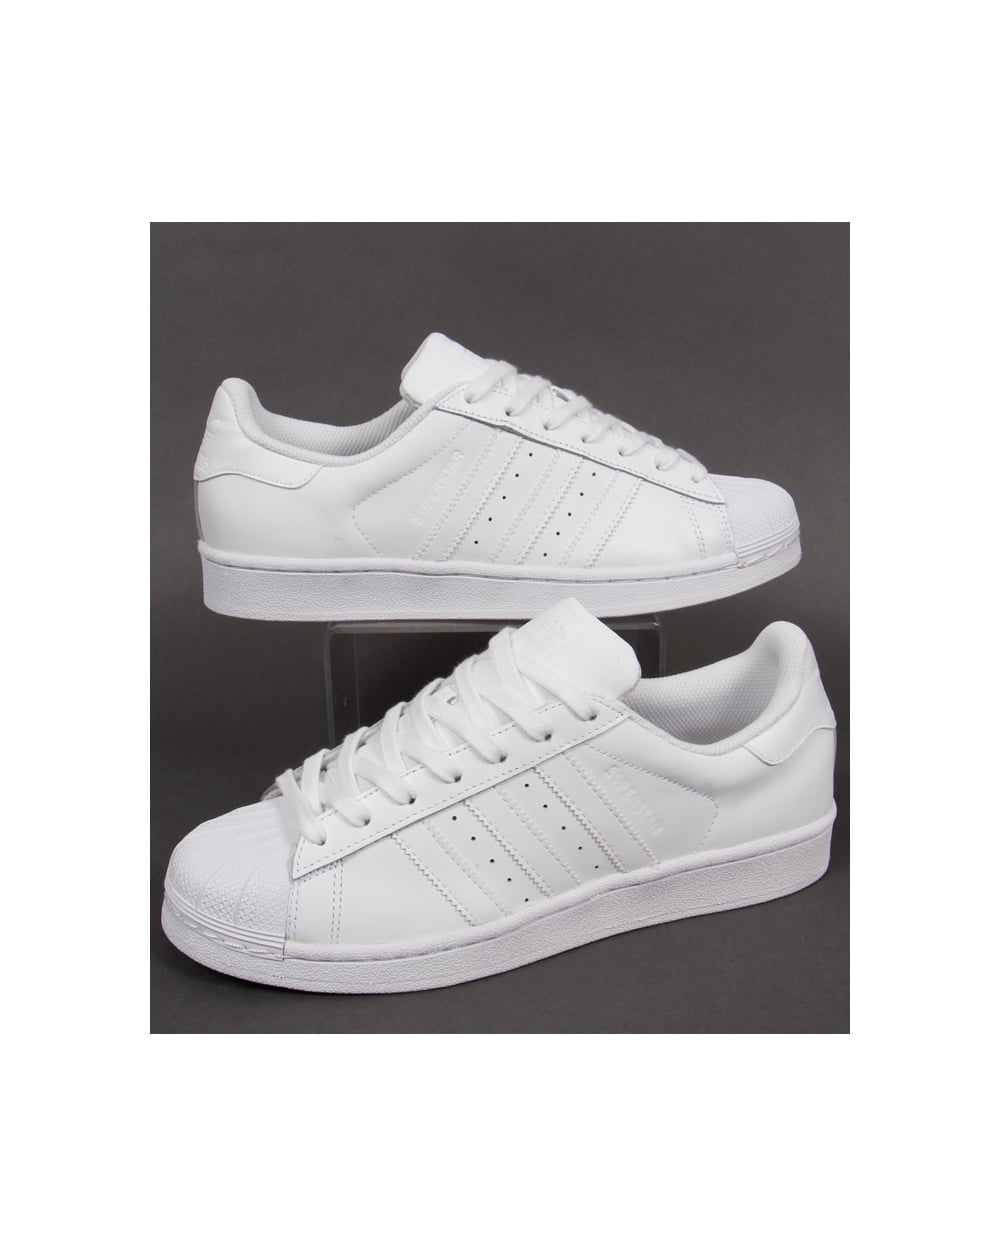 91c778e0be914 Buy 2 OFF ANY adidas superstar trainers mens CASE AND GET 70% OFF!